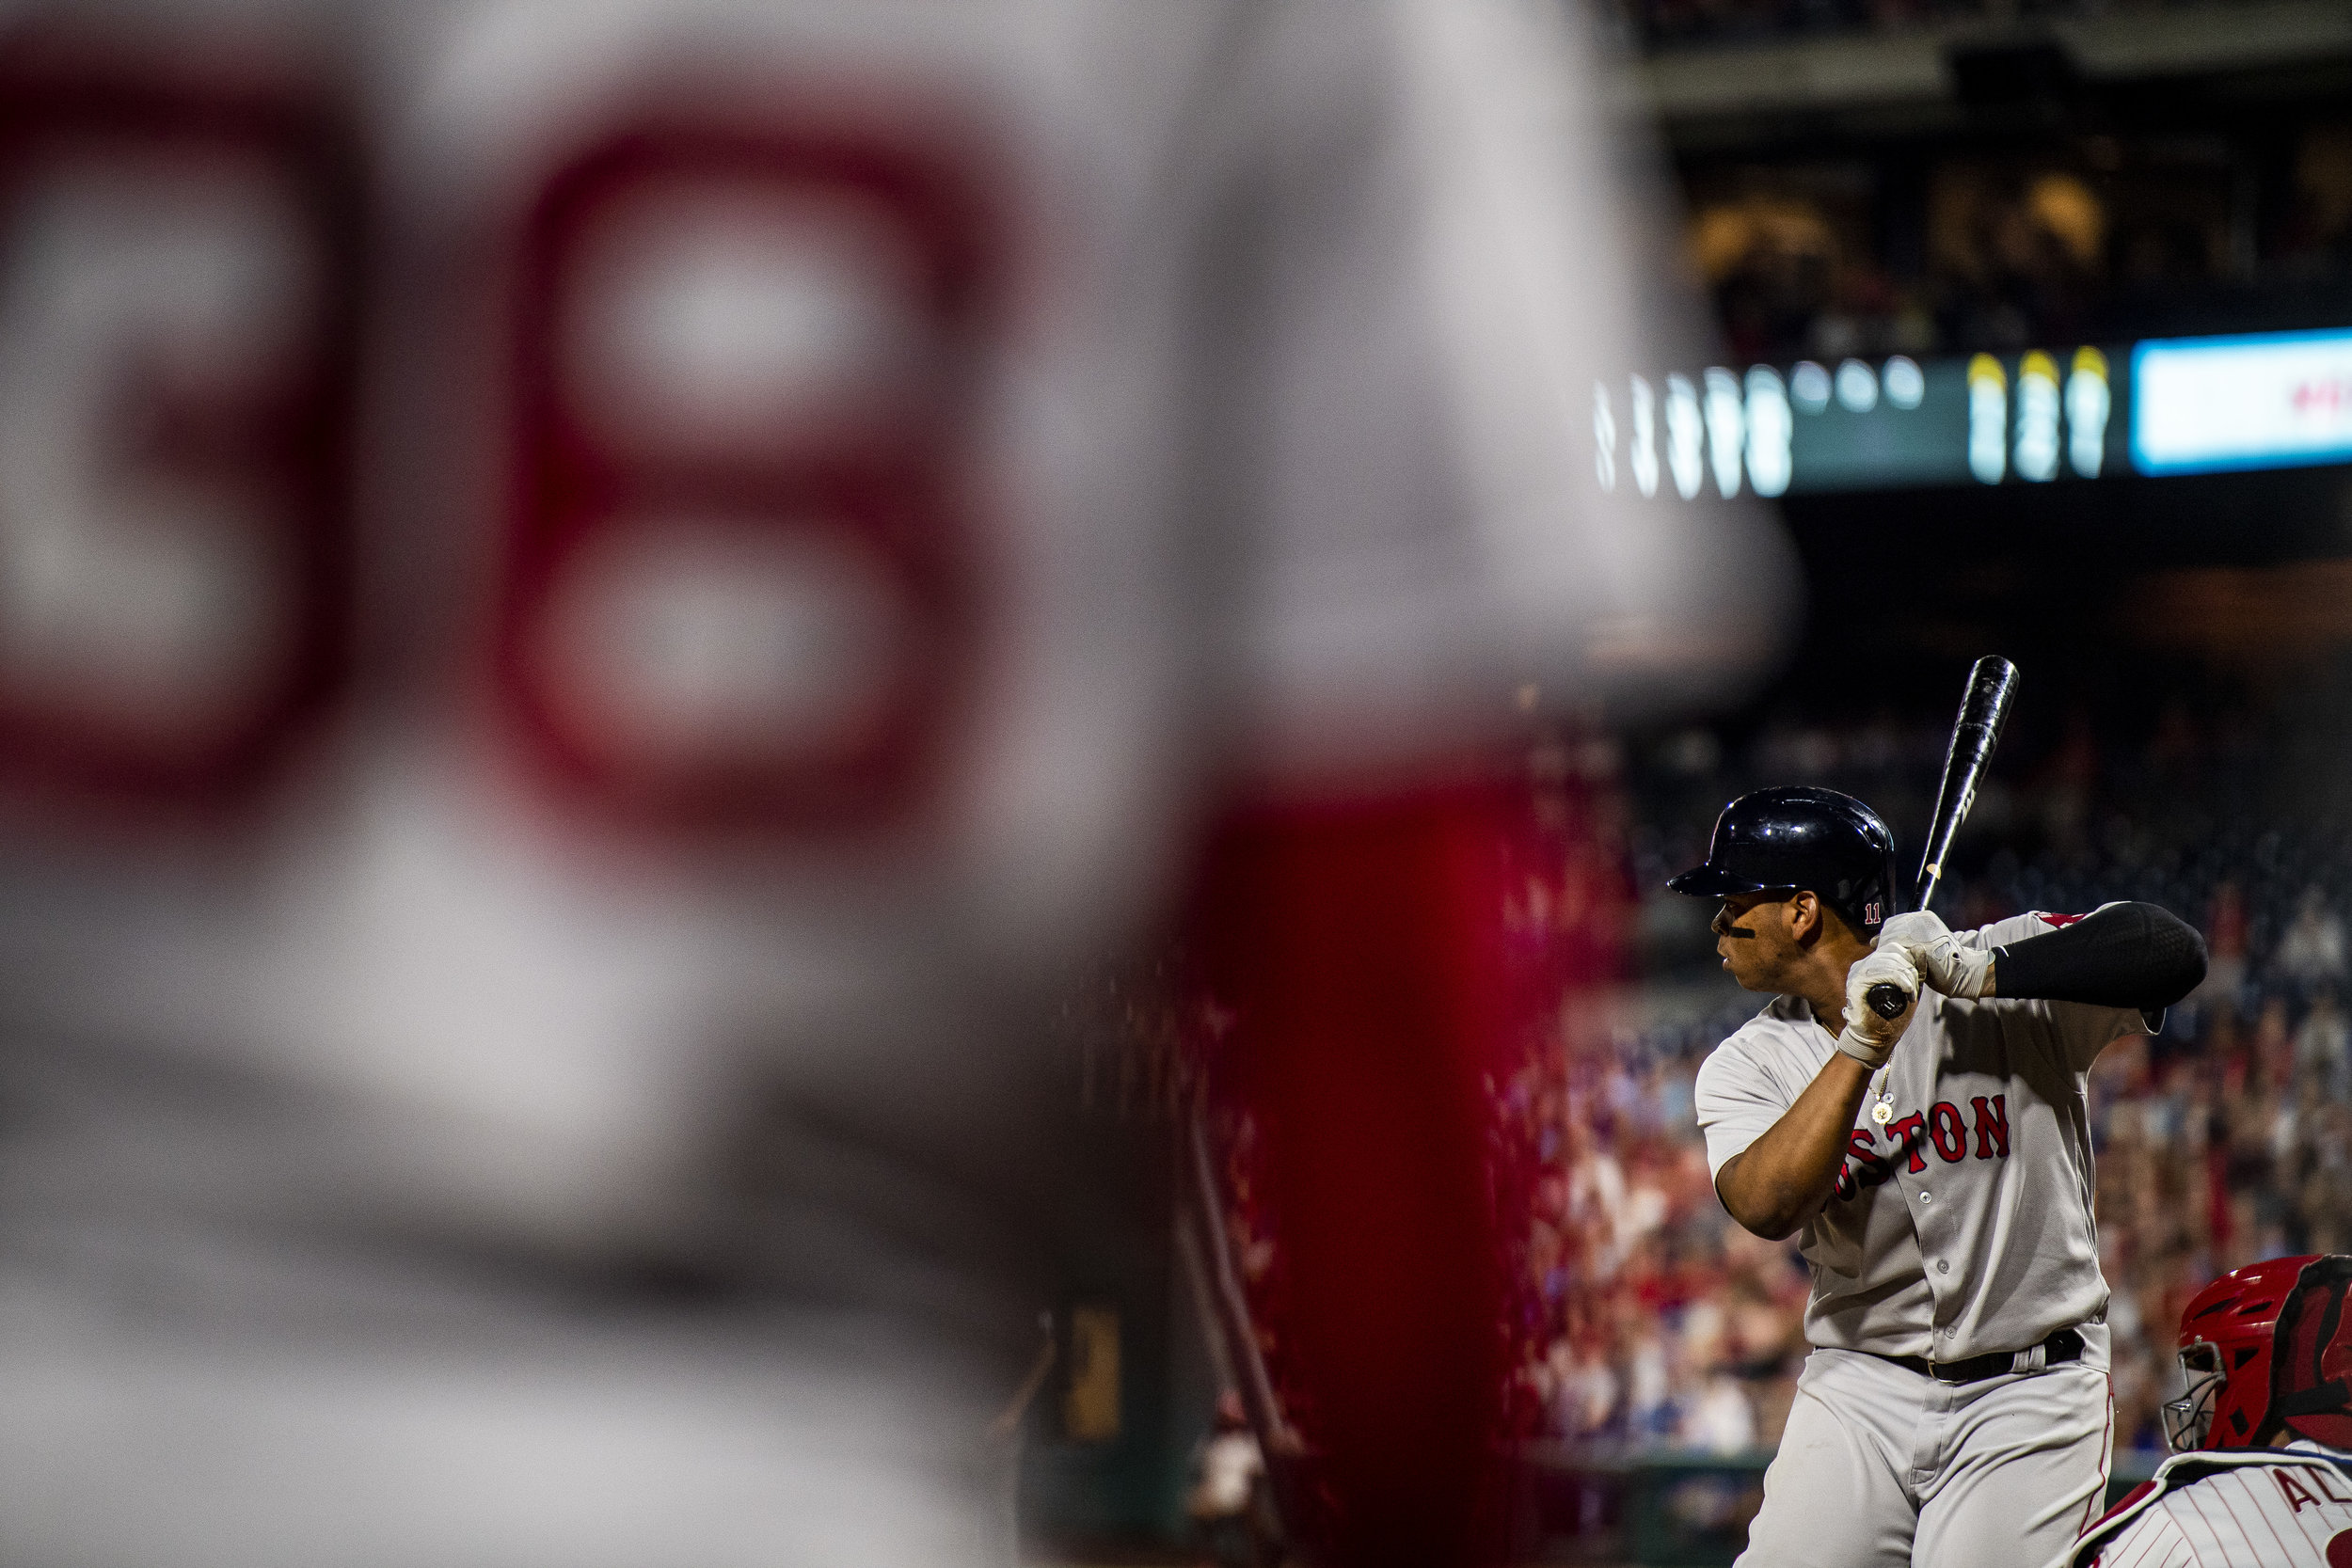 August 14, 2018, Philadelphia, PA: Boston Red Sox third basemen Rafael Devers prepress to take a swing as the Boston Red Sox face the Philadelphia Phillies at Citizen Bank Park in Philadelphia, Pennsylvania on Tuesday, August 14, 2018. (Photo by Matthew Thomas/Boston Red Sox)